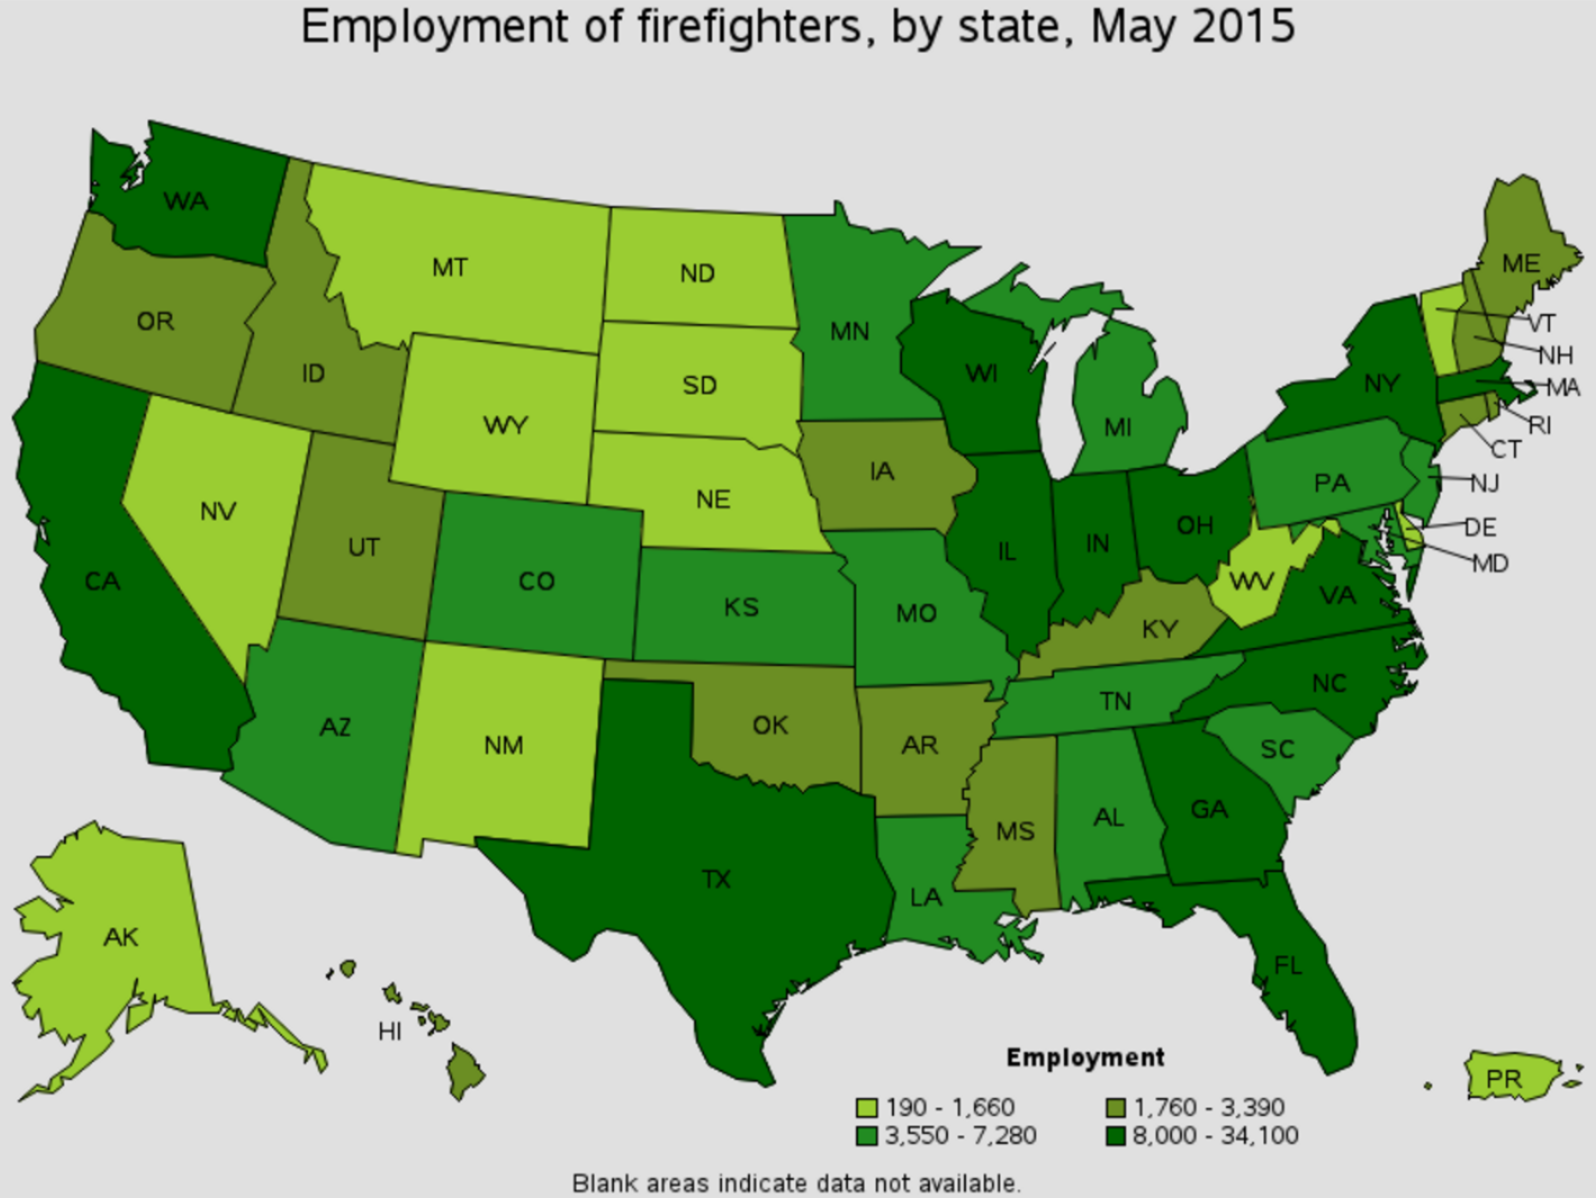 firefighter job outlook by state Winfield Kansas